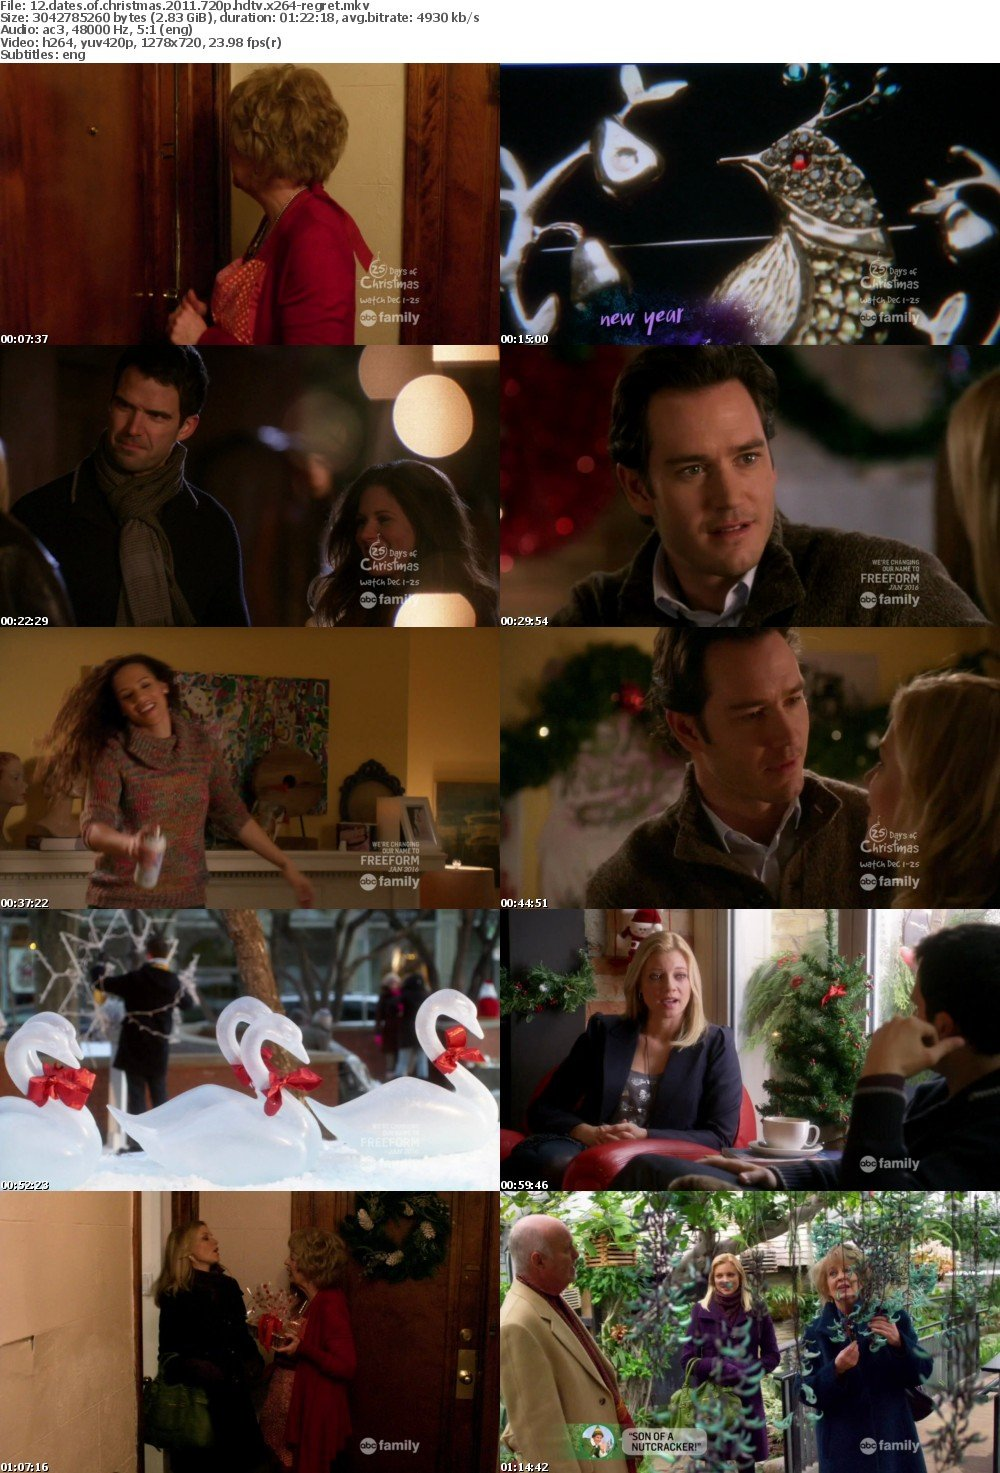 12 Dates Of Christmas.Download 12 Dates Of Christmas 2011 720p Hdtv X264 Regret